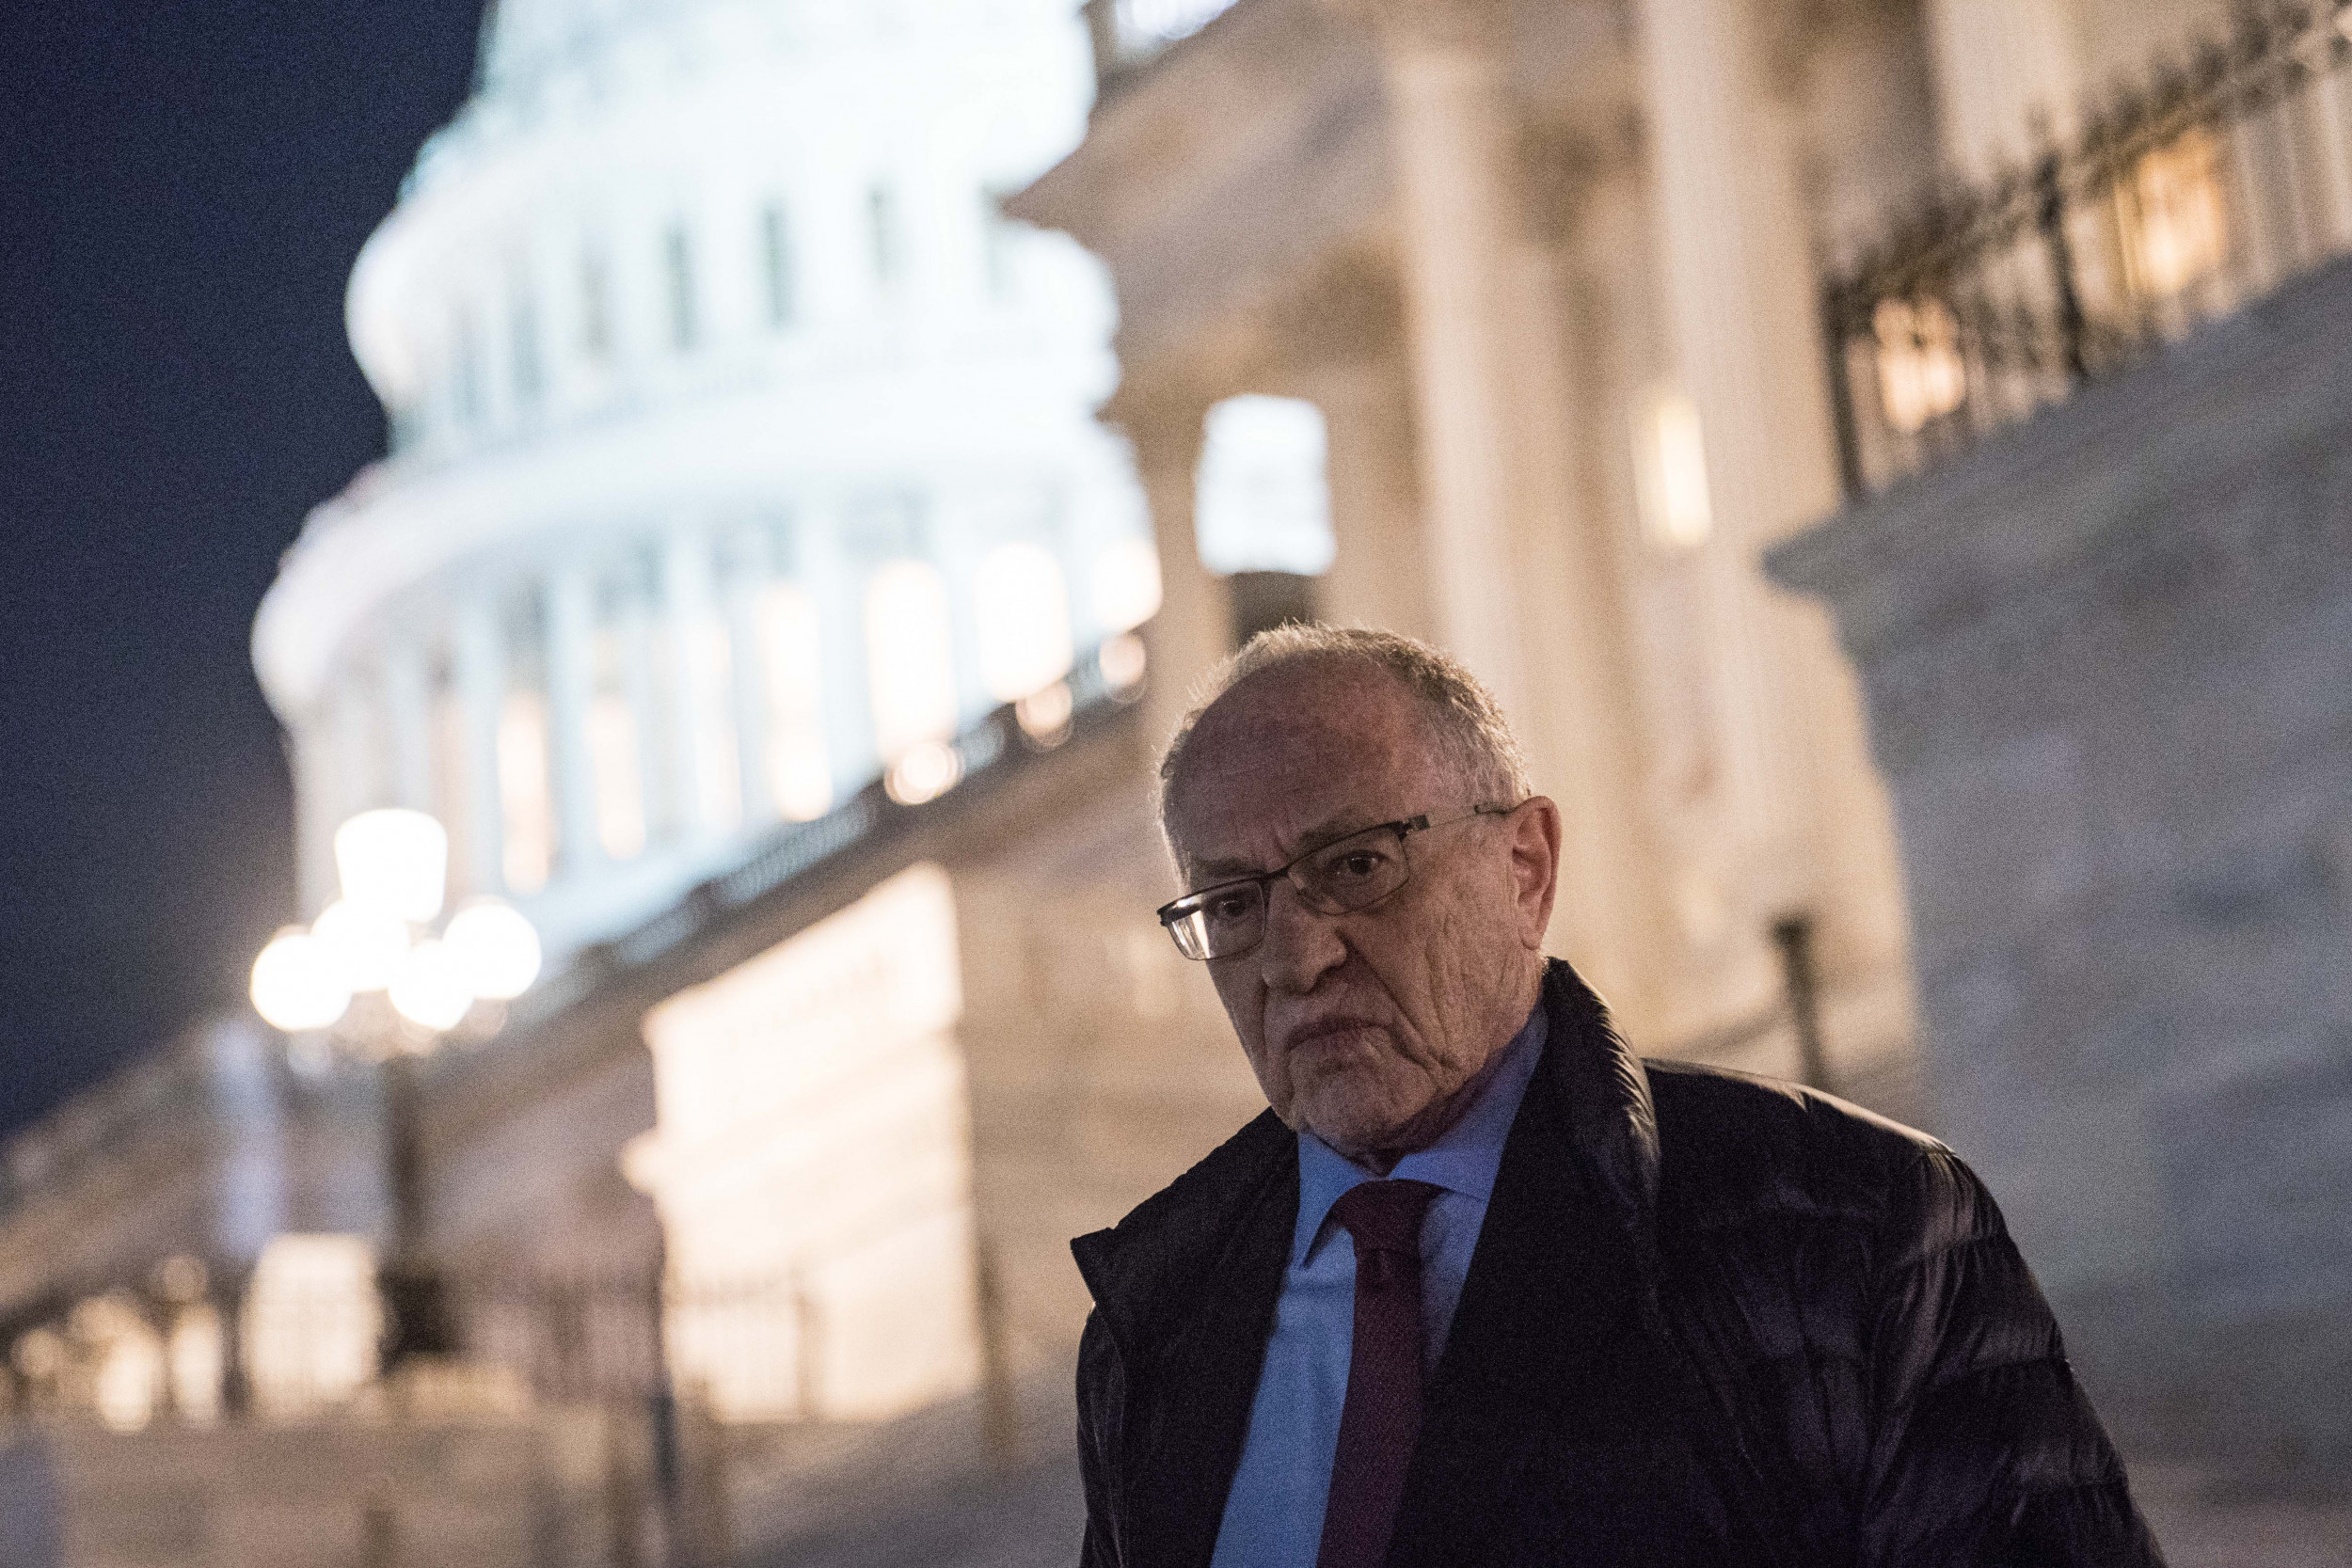 Trump wants Congress to decide election and that's a strategy that could win, Dershowitz says